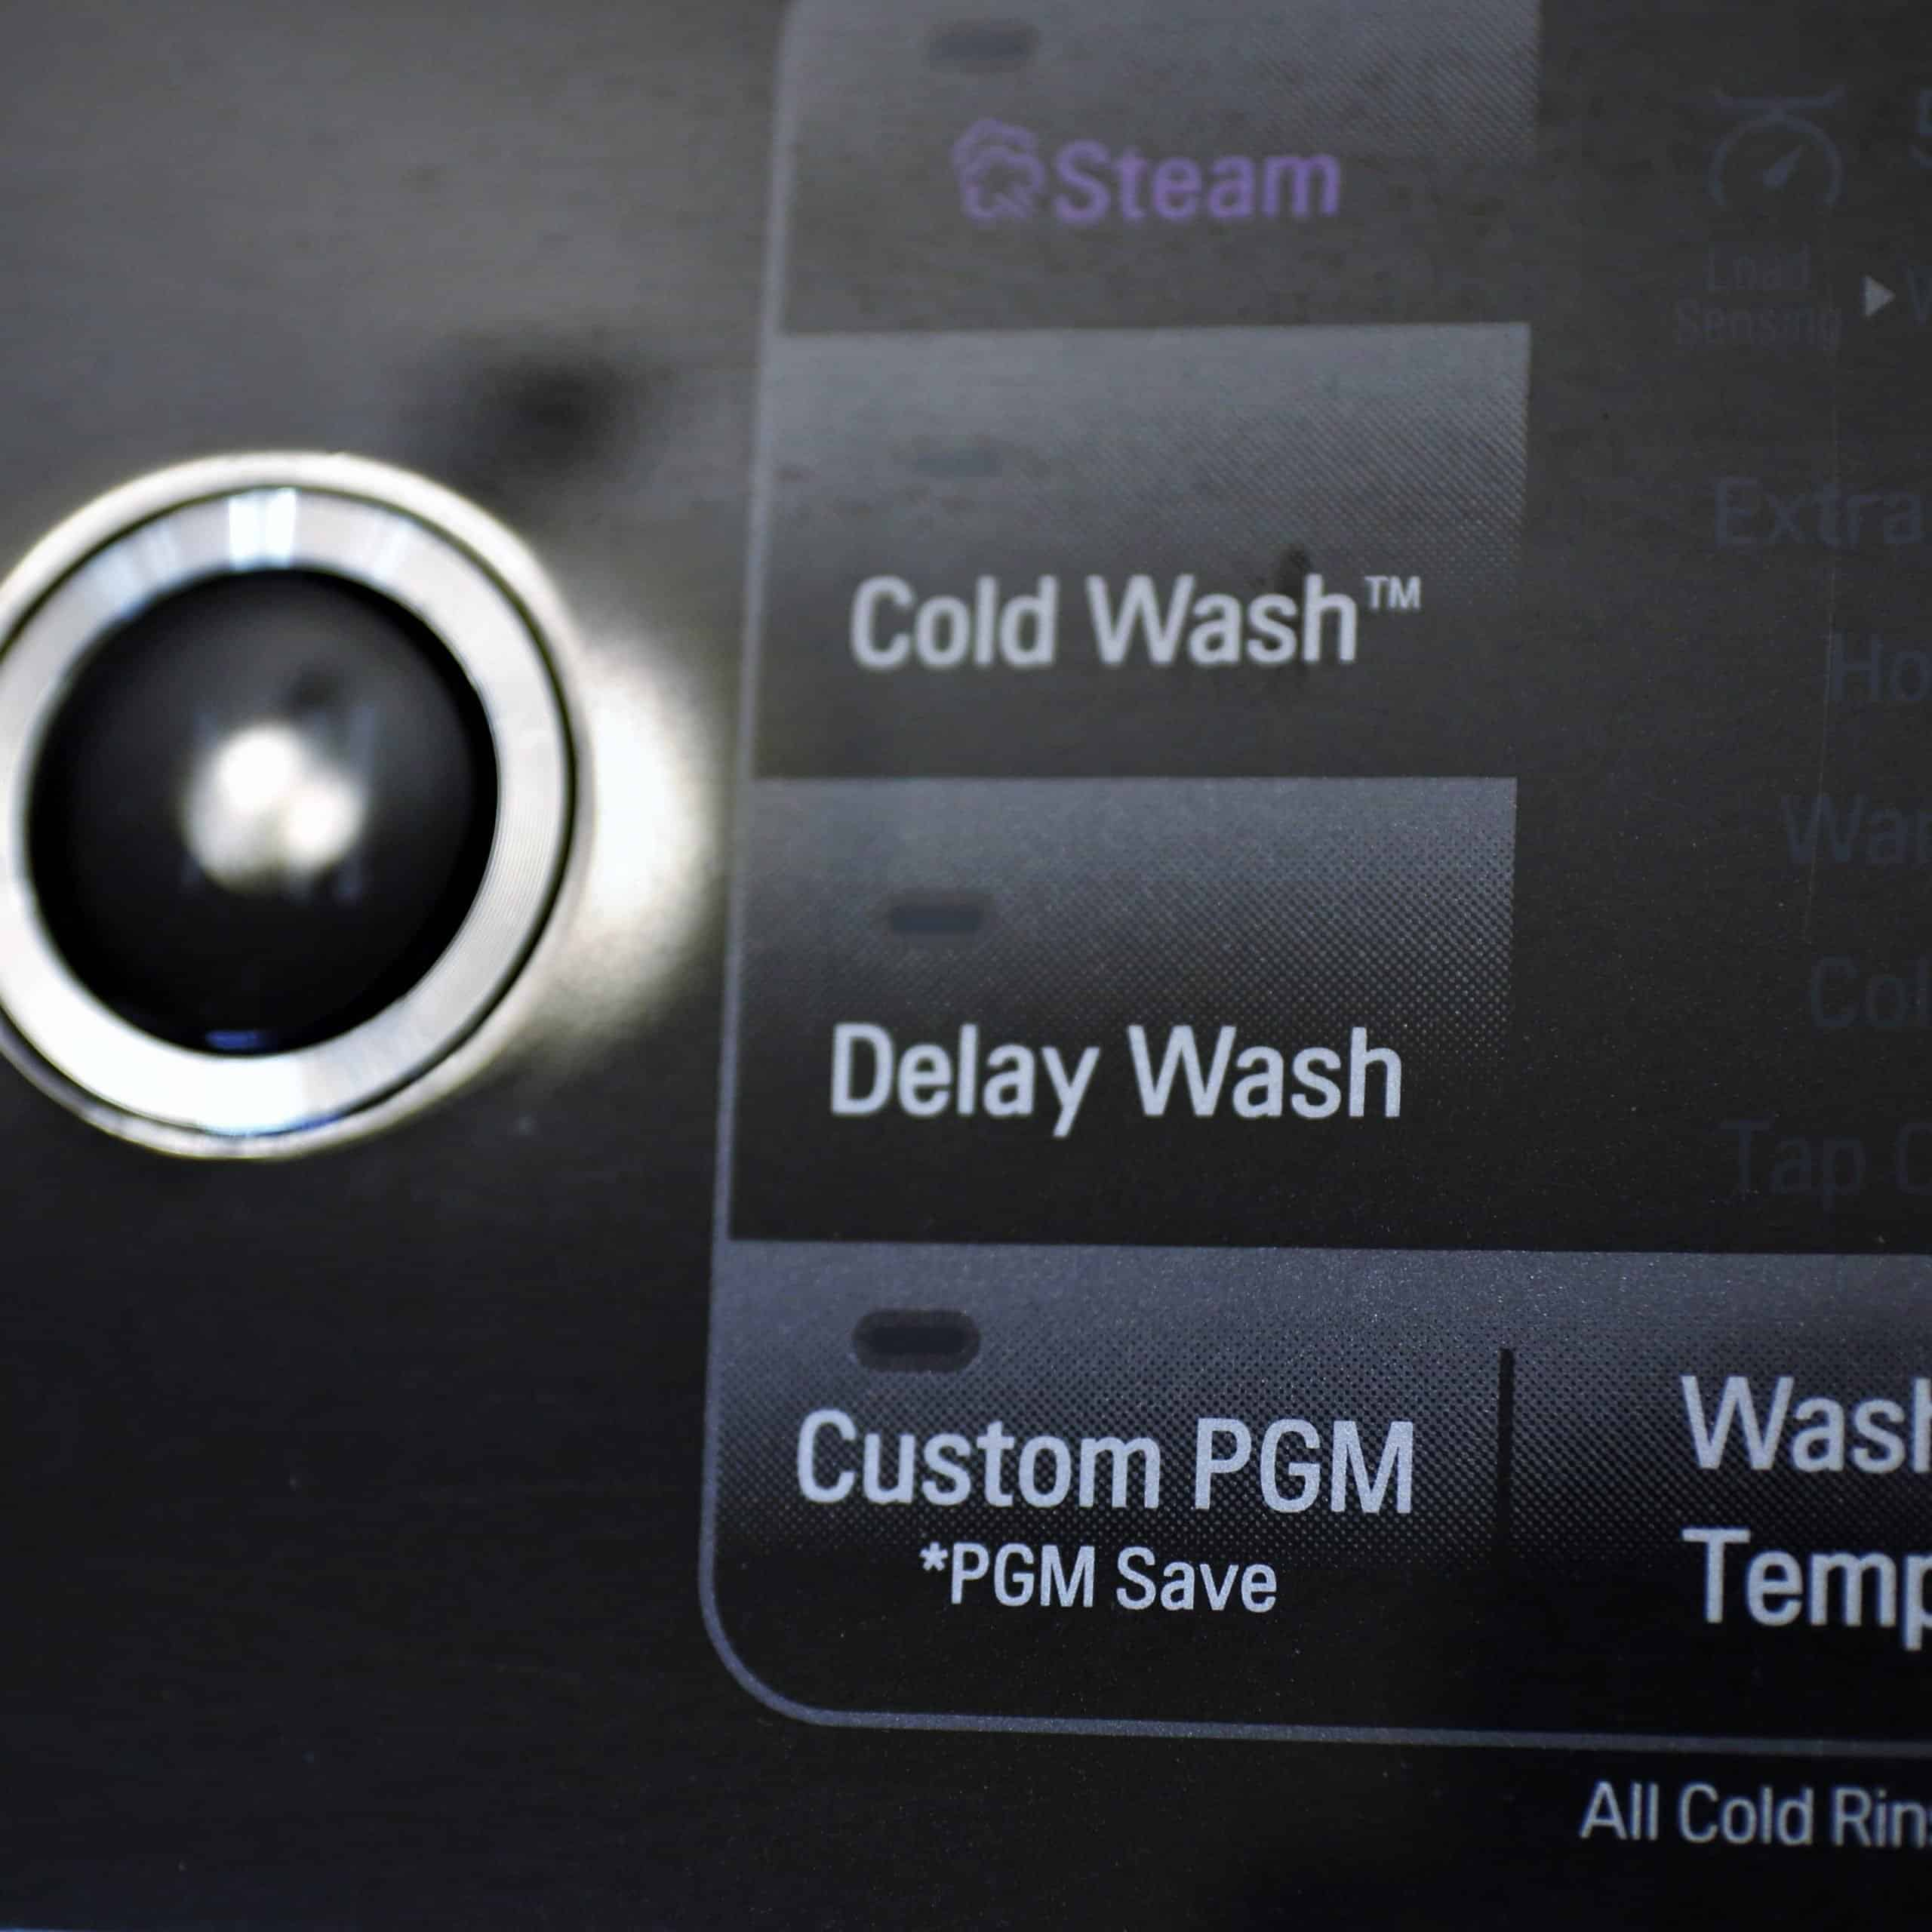 The delay start feature on my washing machine went unappreciated for years, but not anymore.